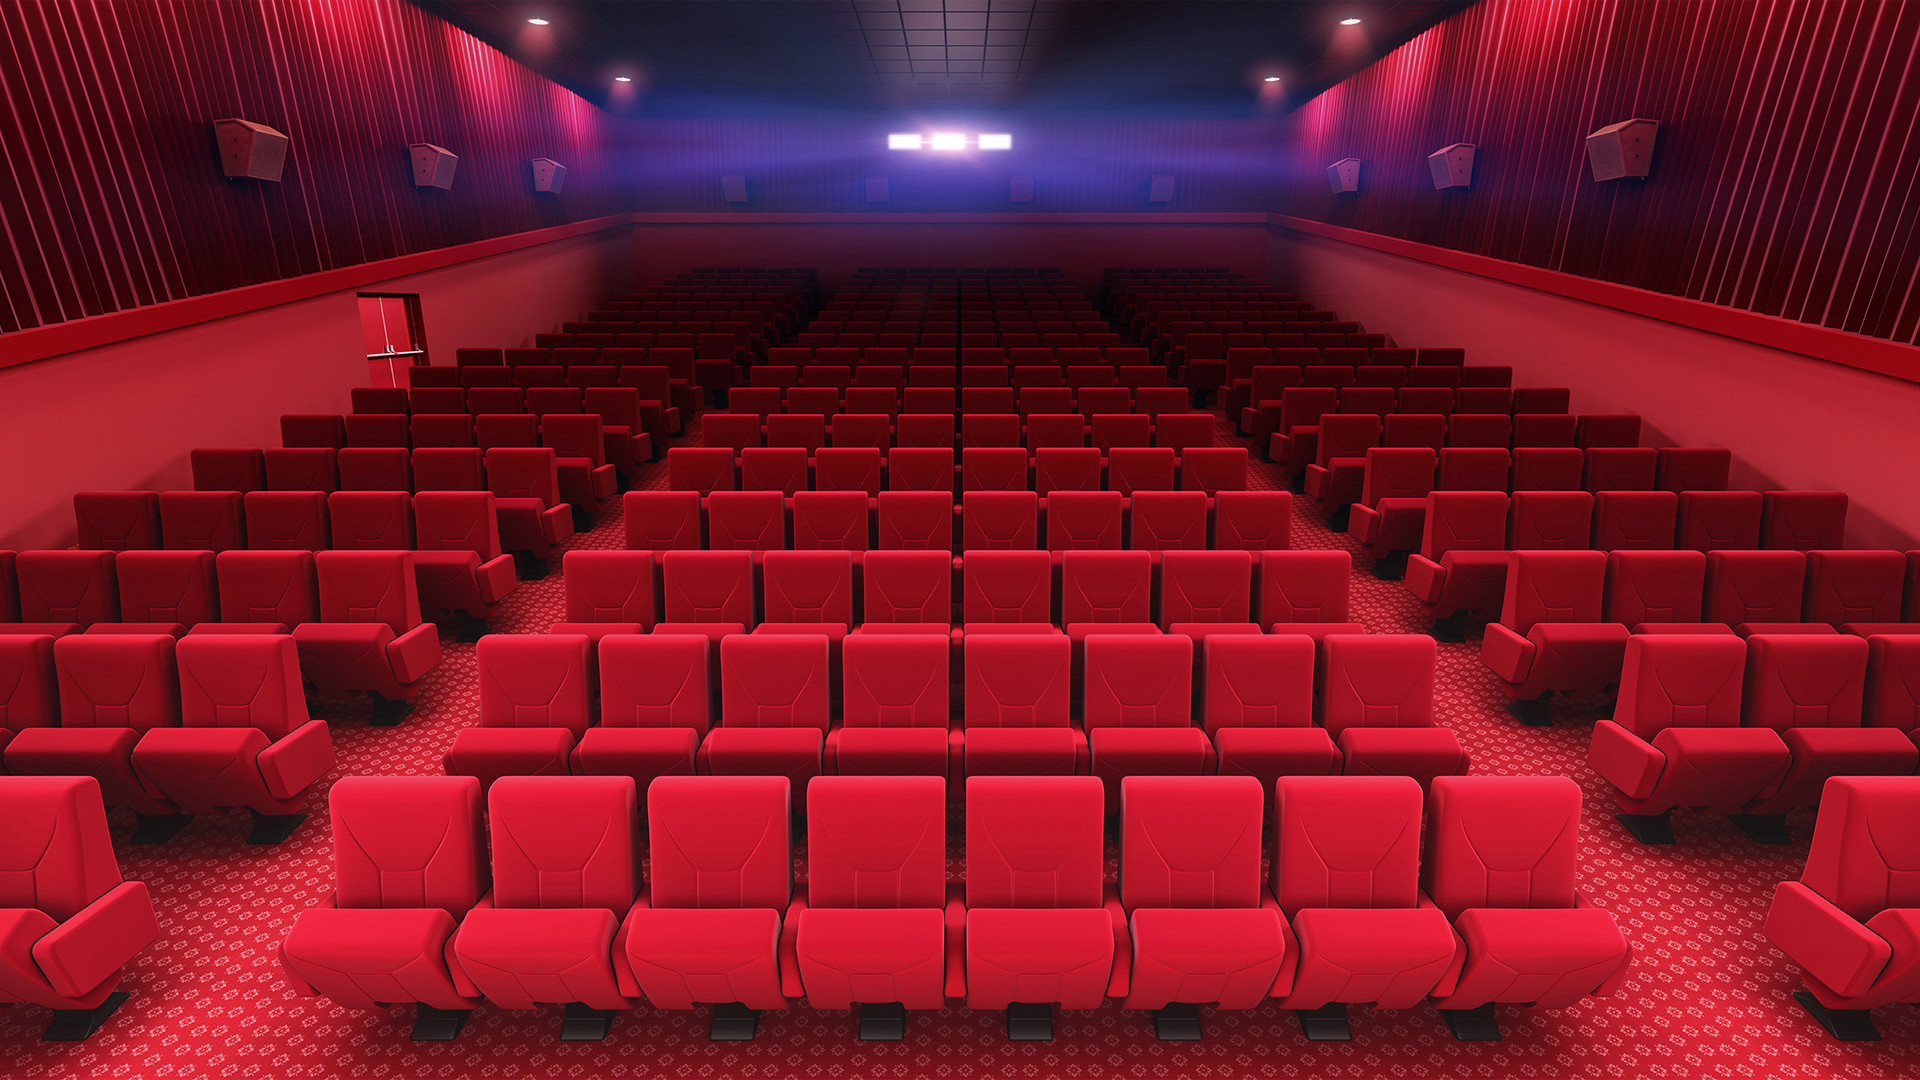 Movie Theater Wallpaper 59 images